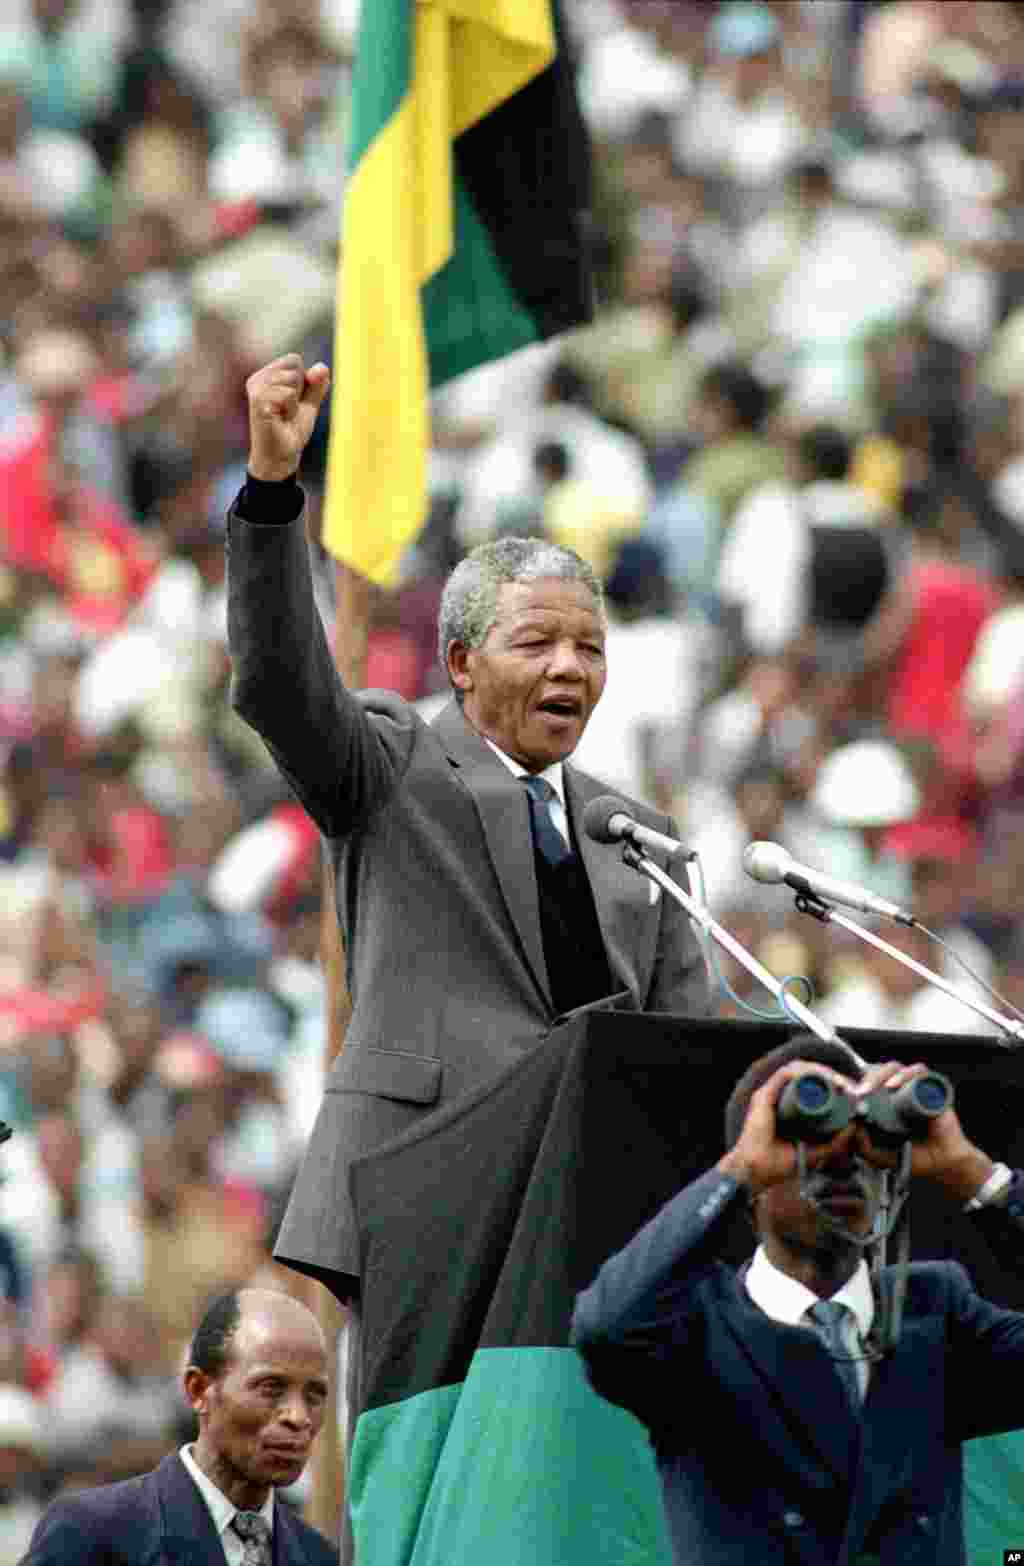 ANC leader and symbol of resistance to apartheid, Nelson Mandela, is seen as he gives the black power salute to the 120,000 ANC supporters in Soweto's Soccer City stadium in Soweto, near Johannesburg, South Africa, Feb. 13, 1990.